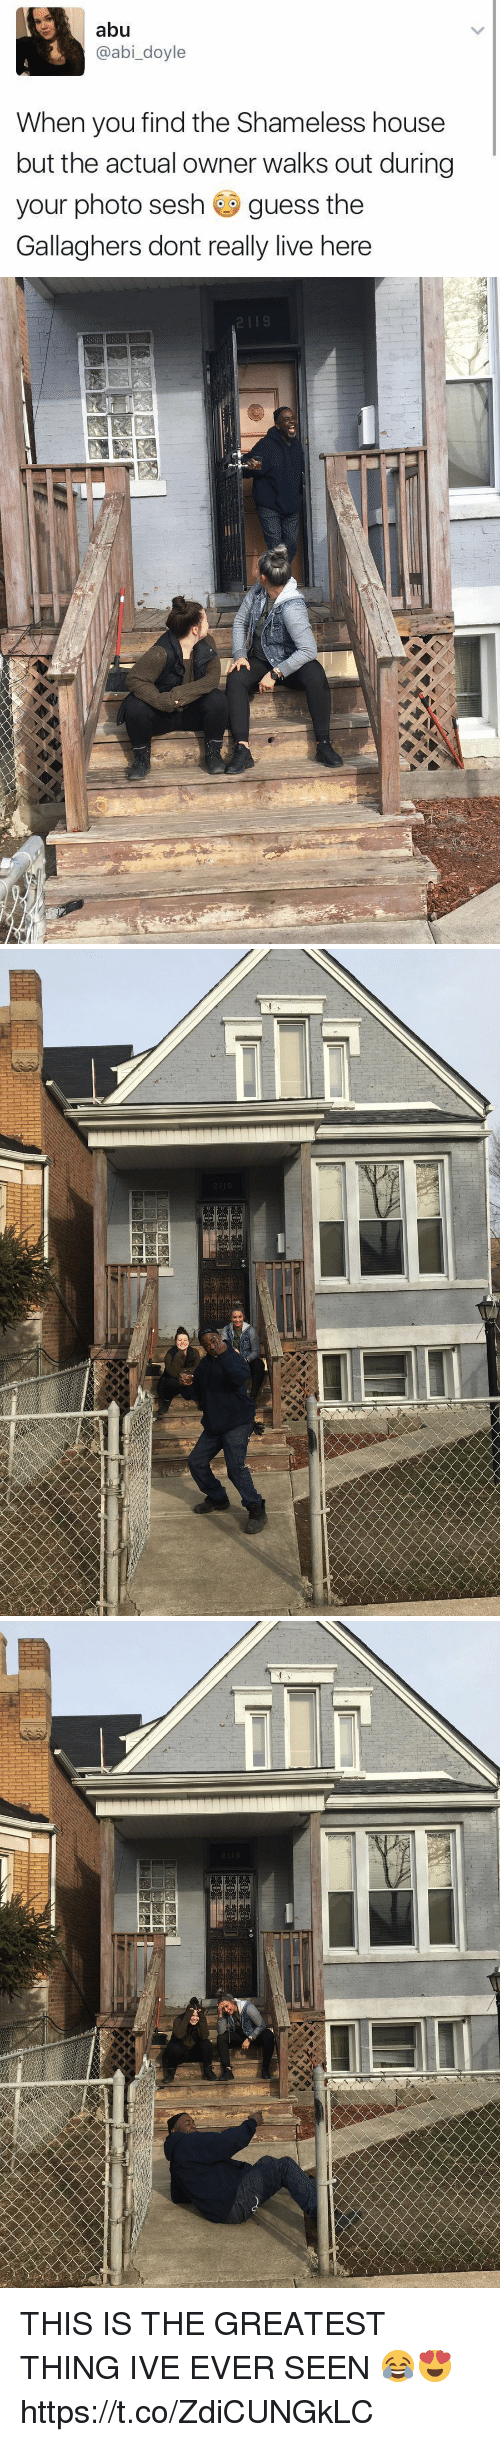 Shameless, Guess, and House: abu  @abi_doyle  When you find the Shameless house  but the actual owner walks out during  your photo sesh guess the  Gallaghers dont really live here   2119 THIS IS THE GREATEST THING IVE EVER SEEN 😂😍 https://t.co/ZdiCUNGkLC